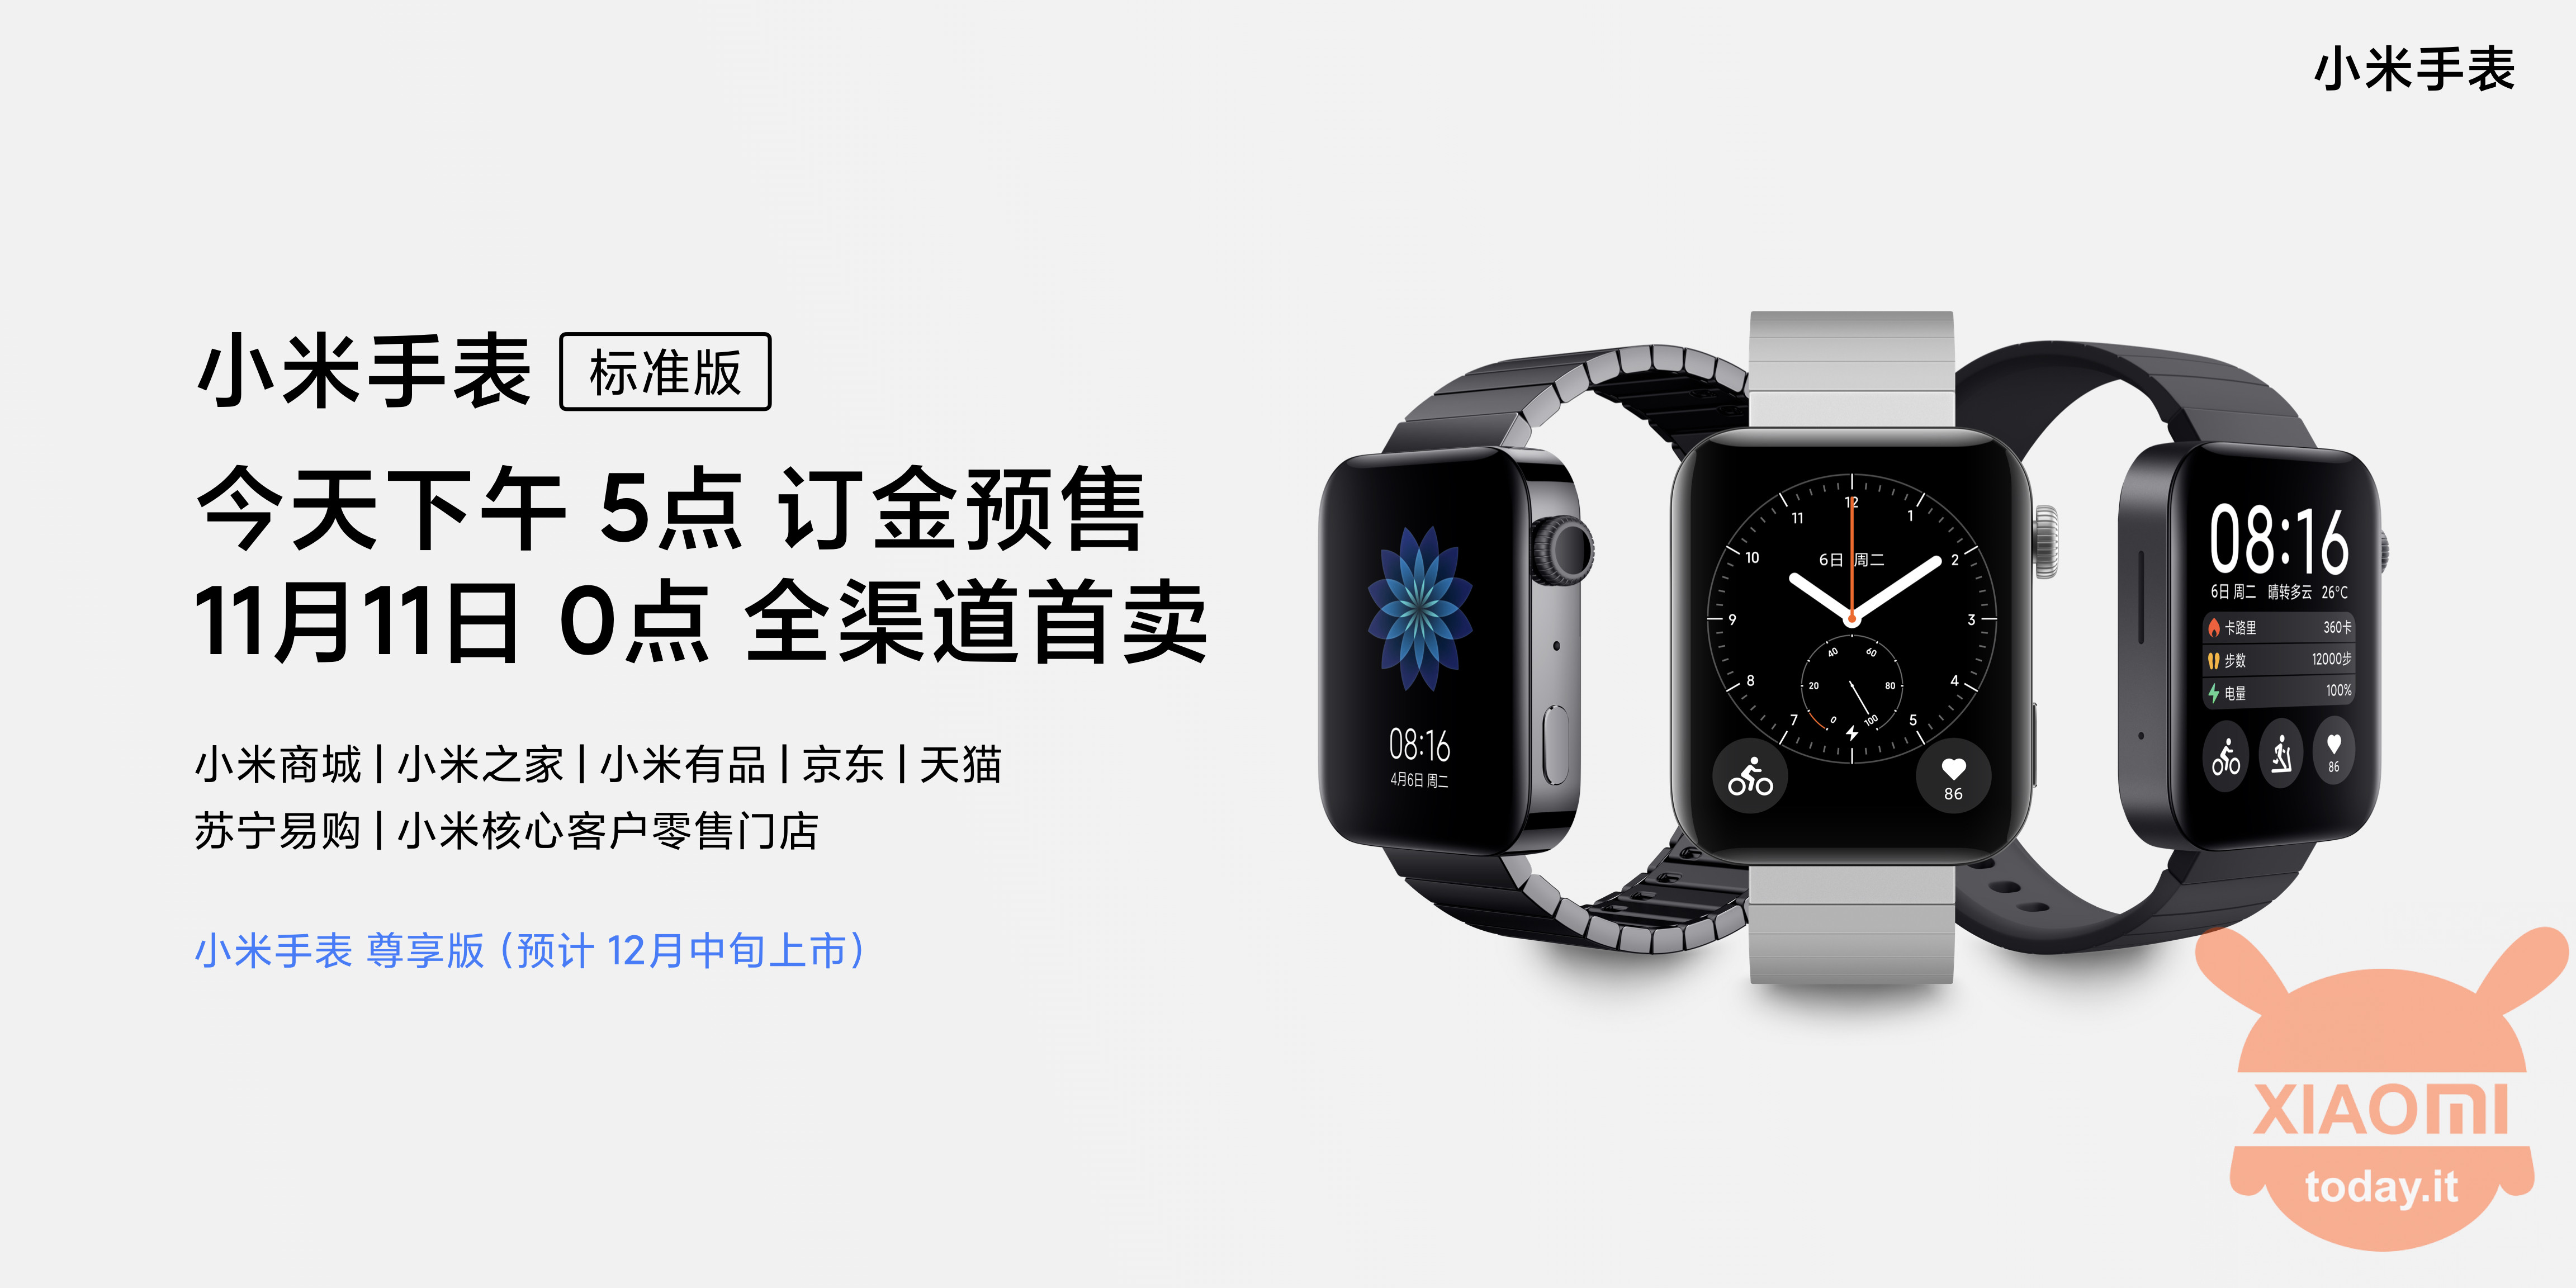 Xiaomi Mi Watch presented with eSIM 4G and 36 hours of autonomy